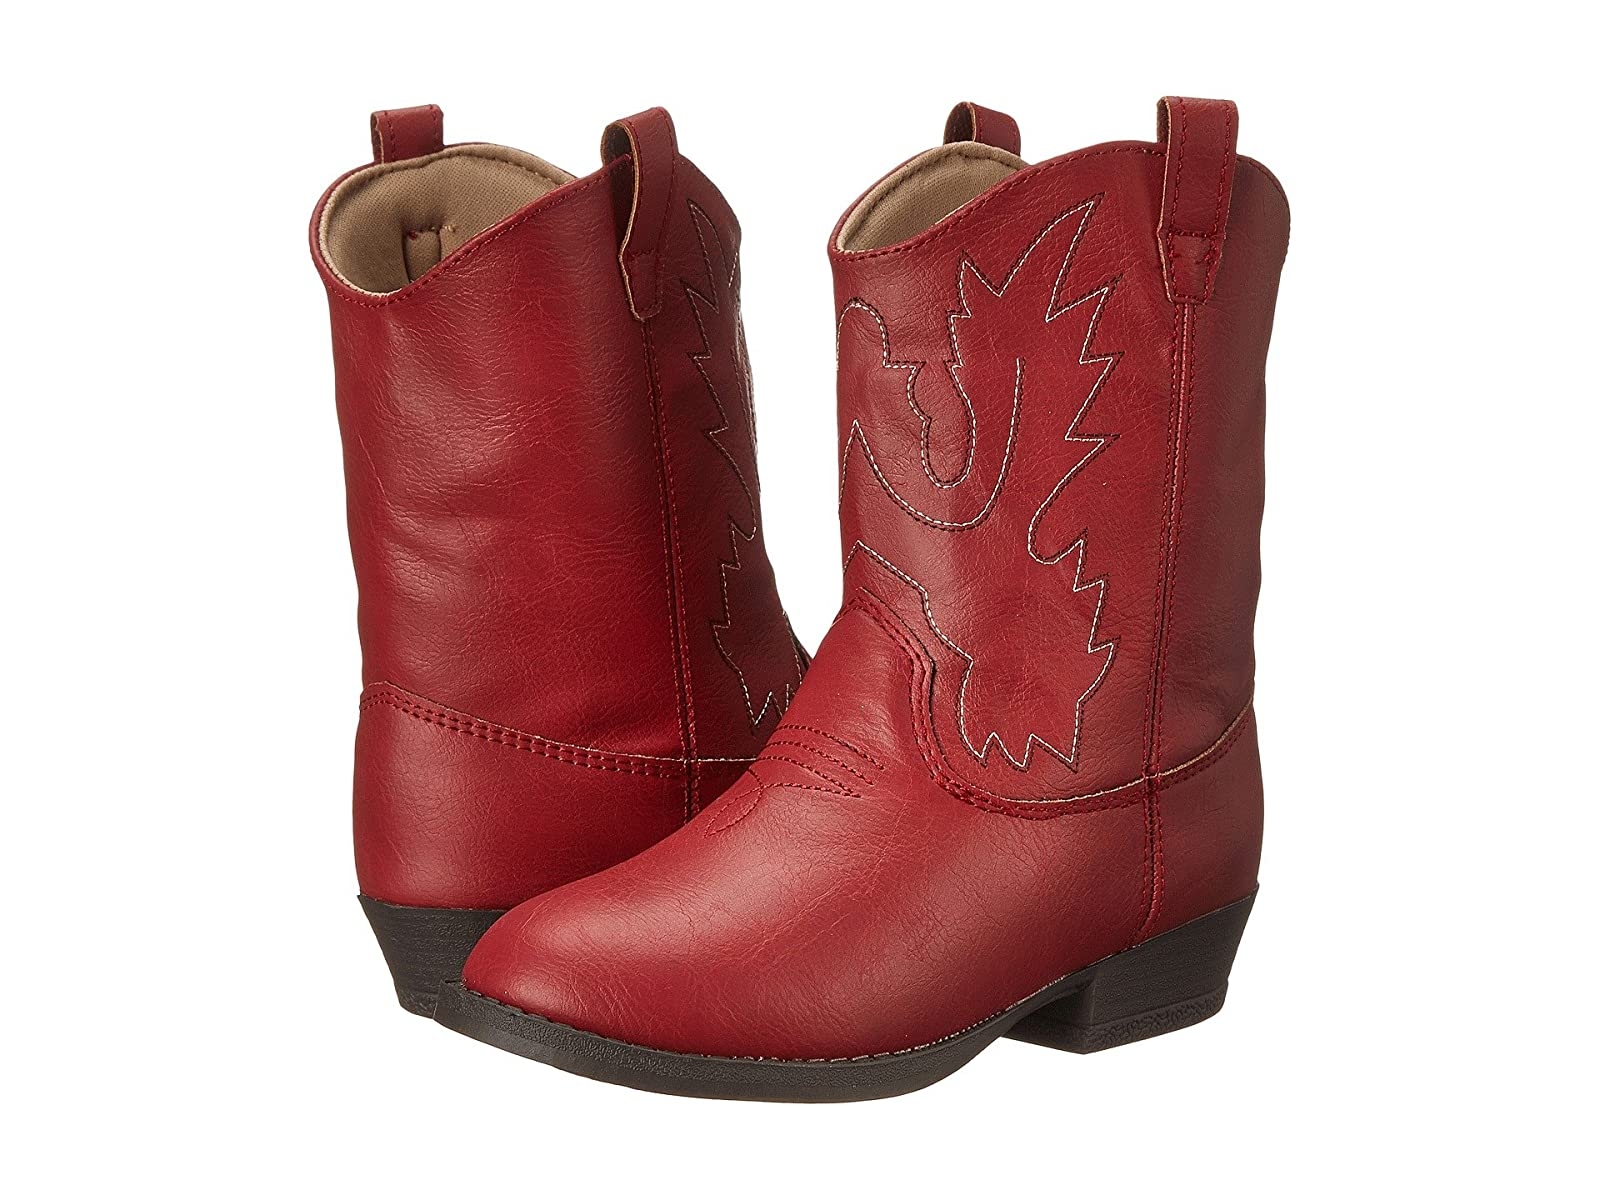 Baby Deer Western Boot (Infant/Toddler/Little Kid)Selling fashionable and eye-catching shoes